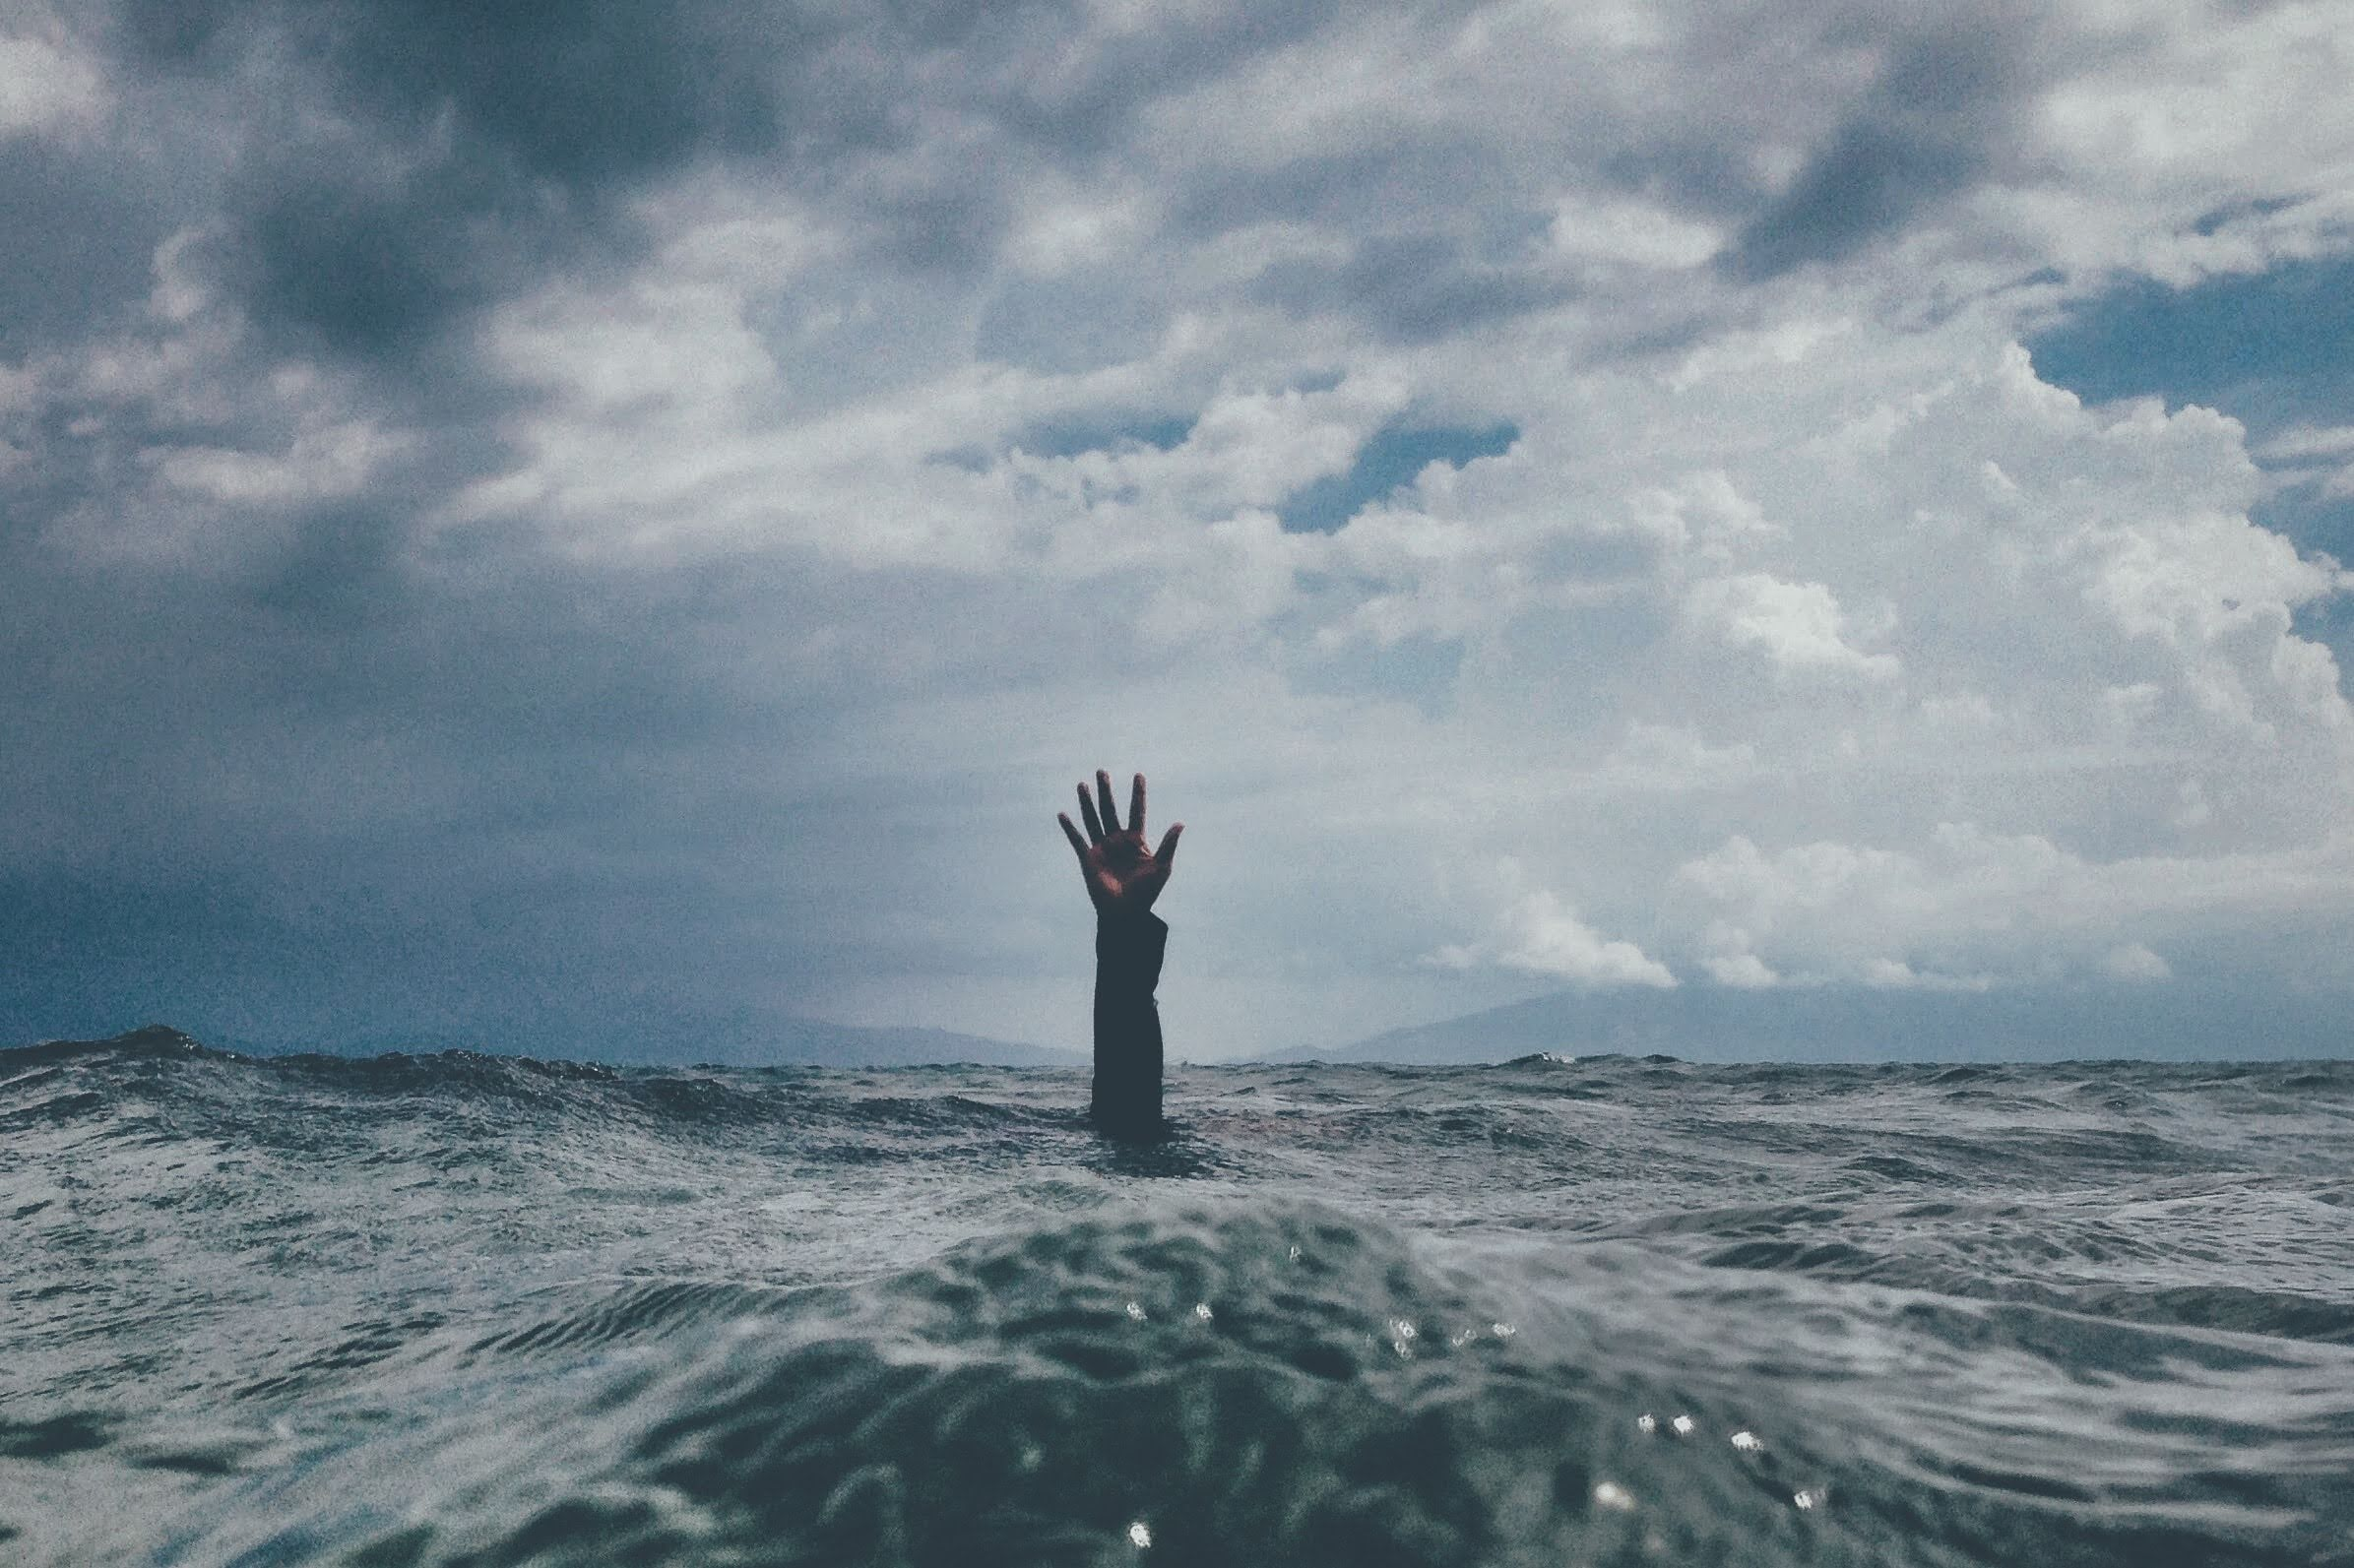 Hand coming out of the water in search for help. Image for mental health article post covid